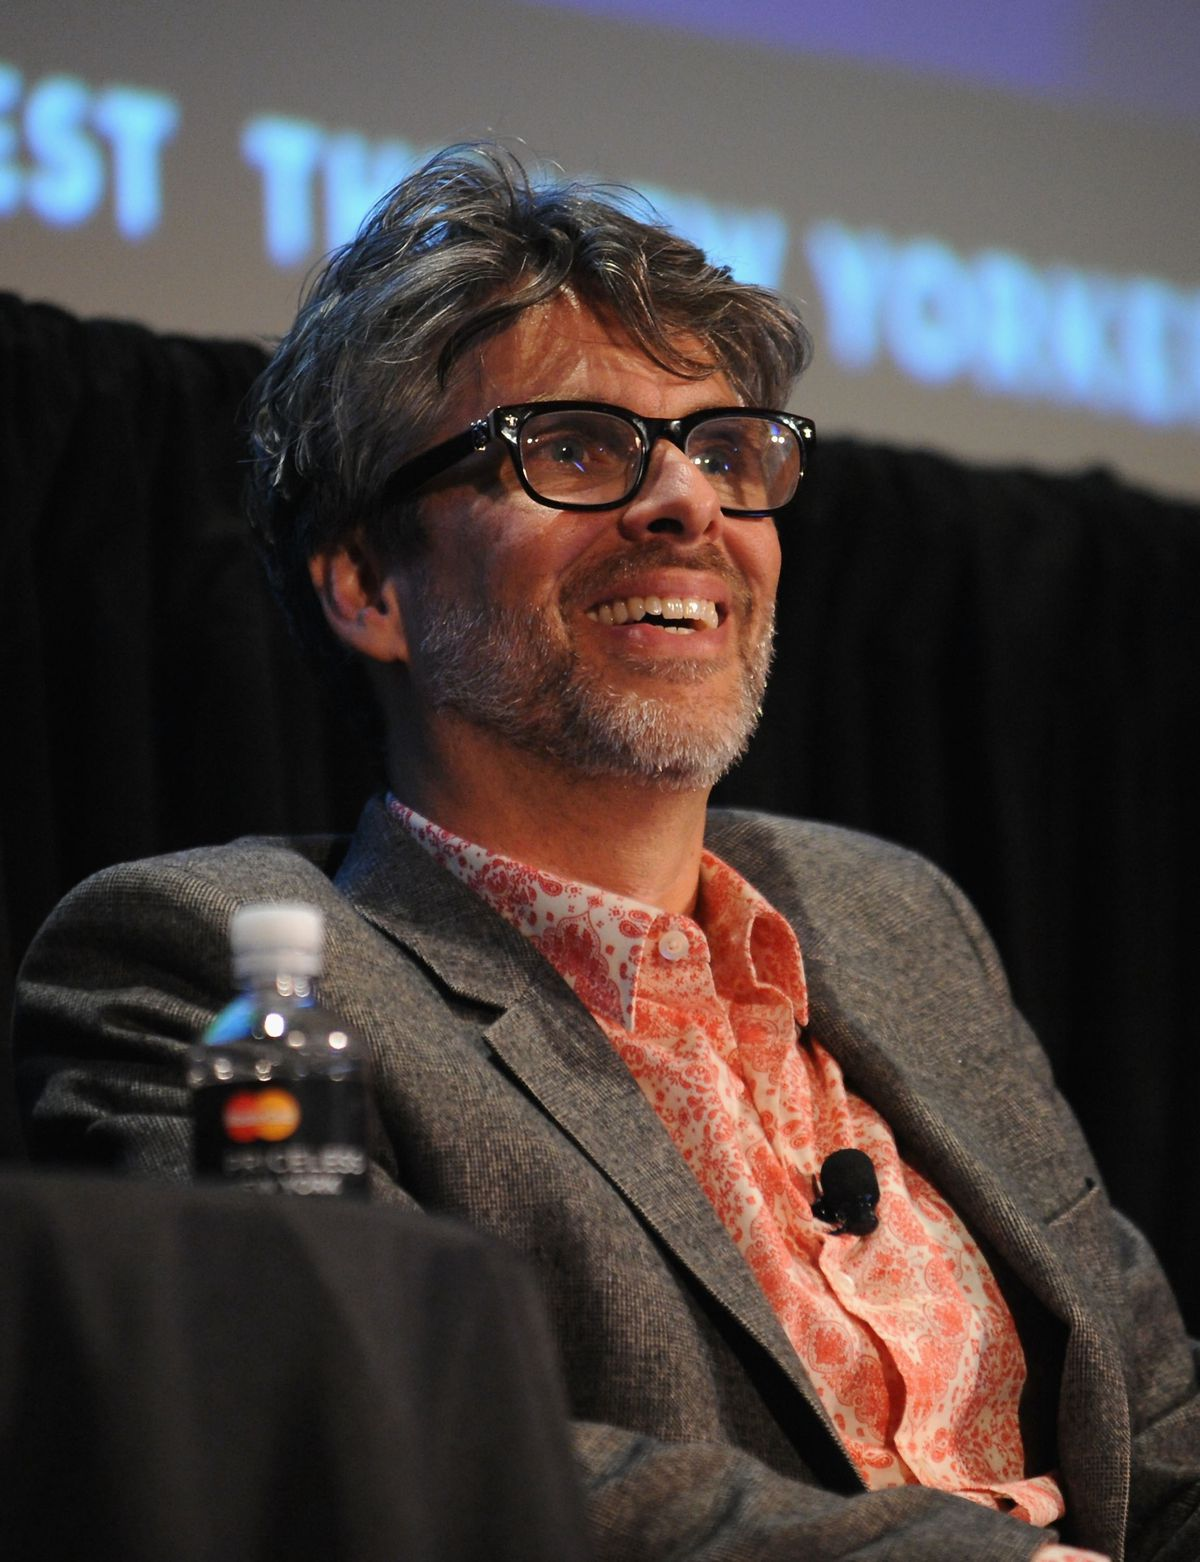 Michael Chabon at The <em>New Yorker Festival in 2014. (GettyImages)</em>